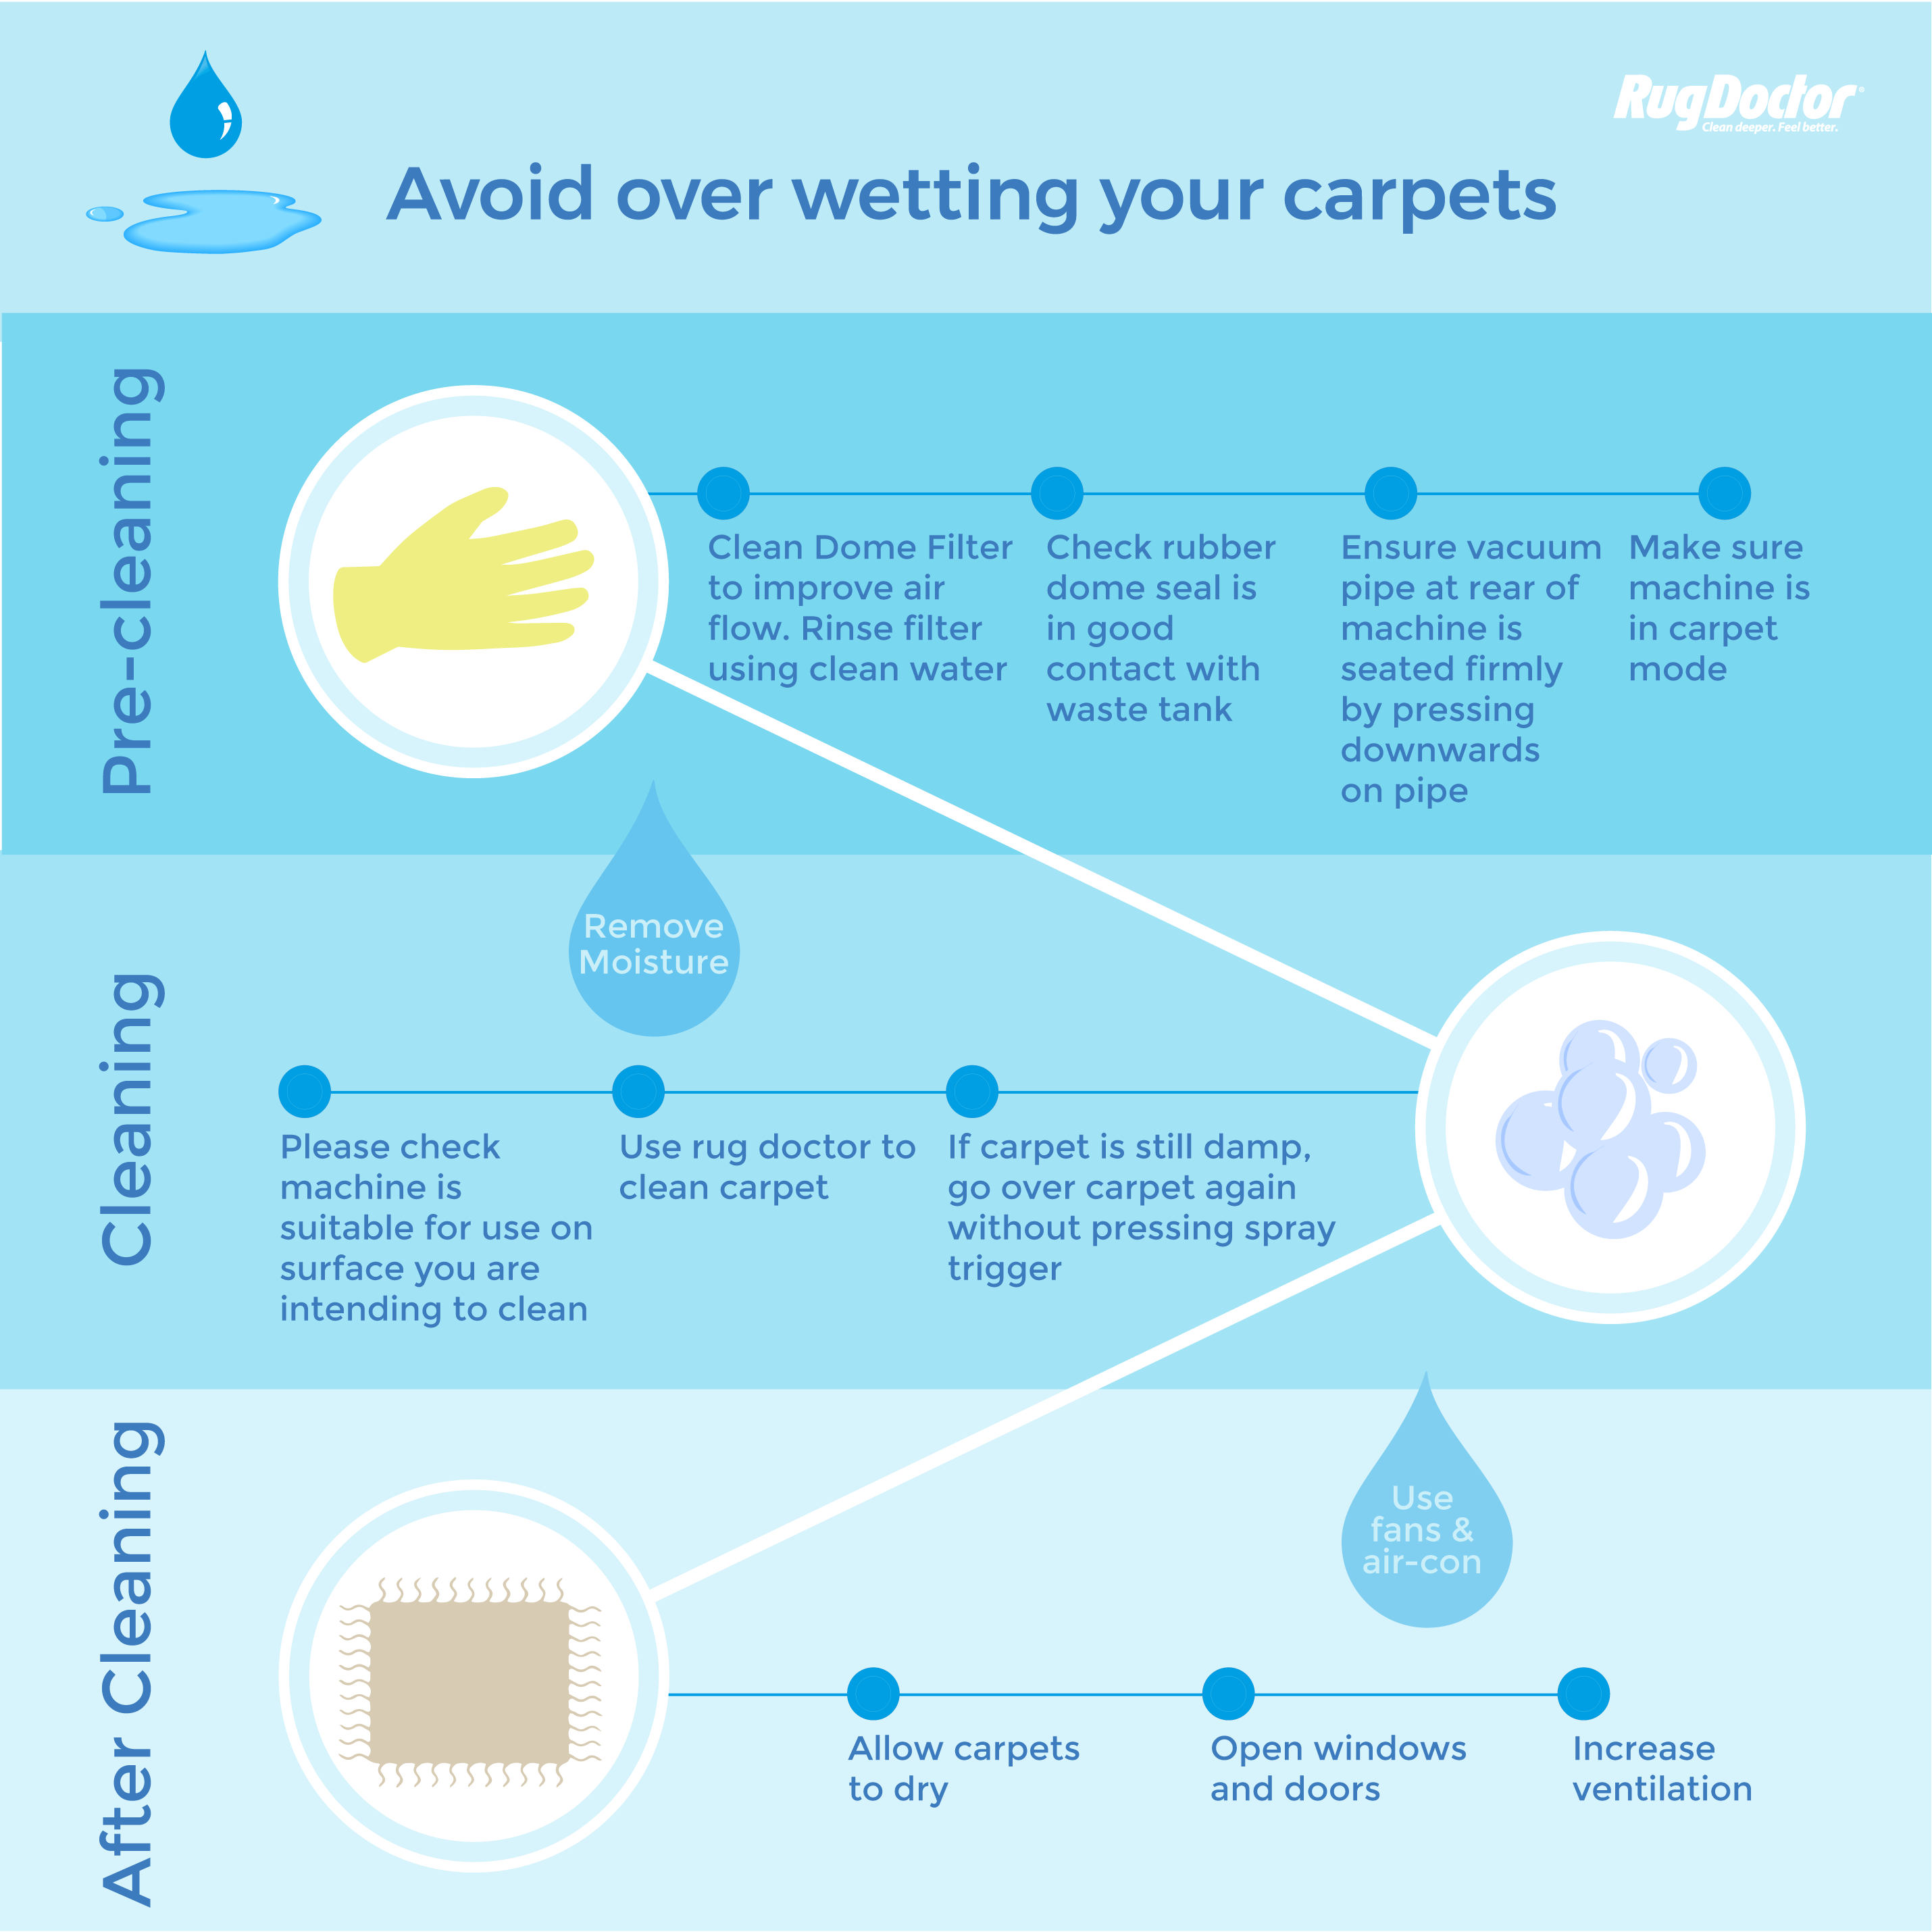 Avoid-over-wetting-your-carpets-infographic How to Avoid Over-Wetting Your Carpets When Cleaning